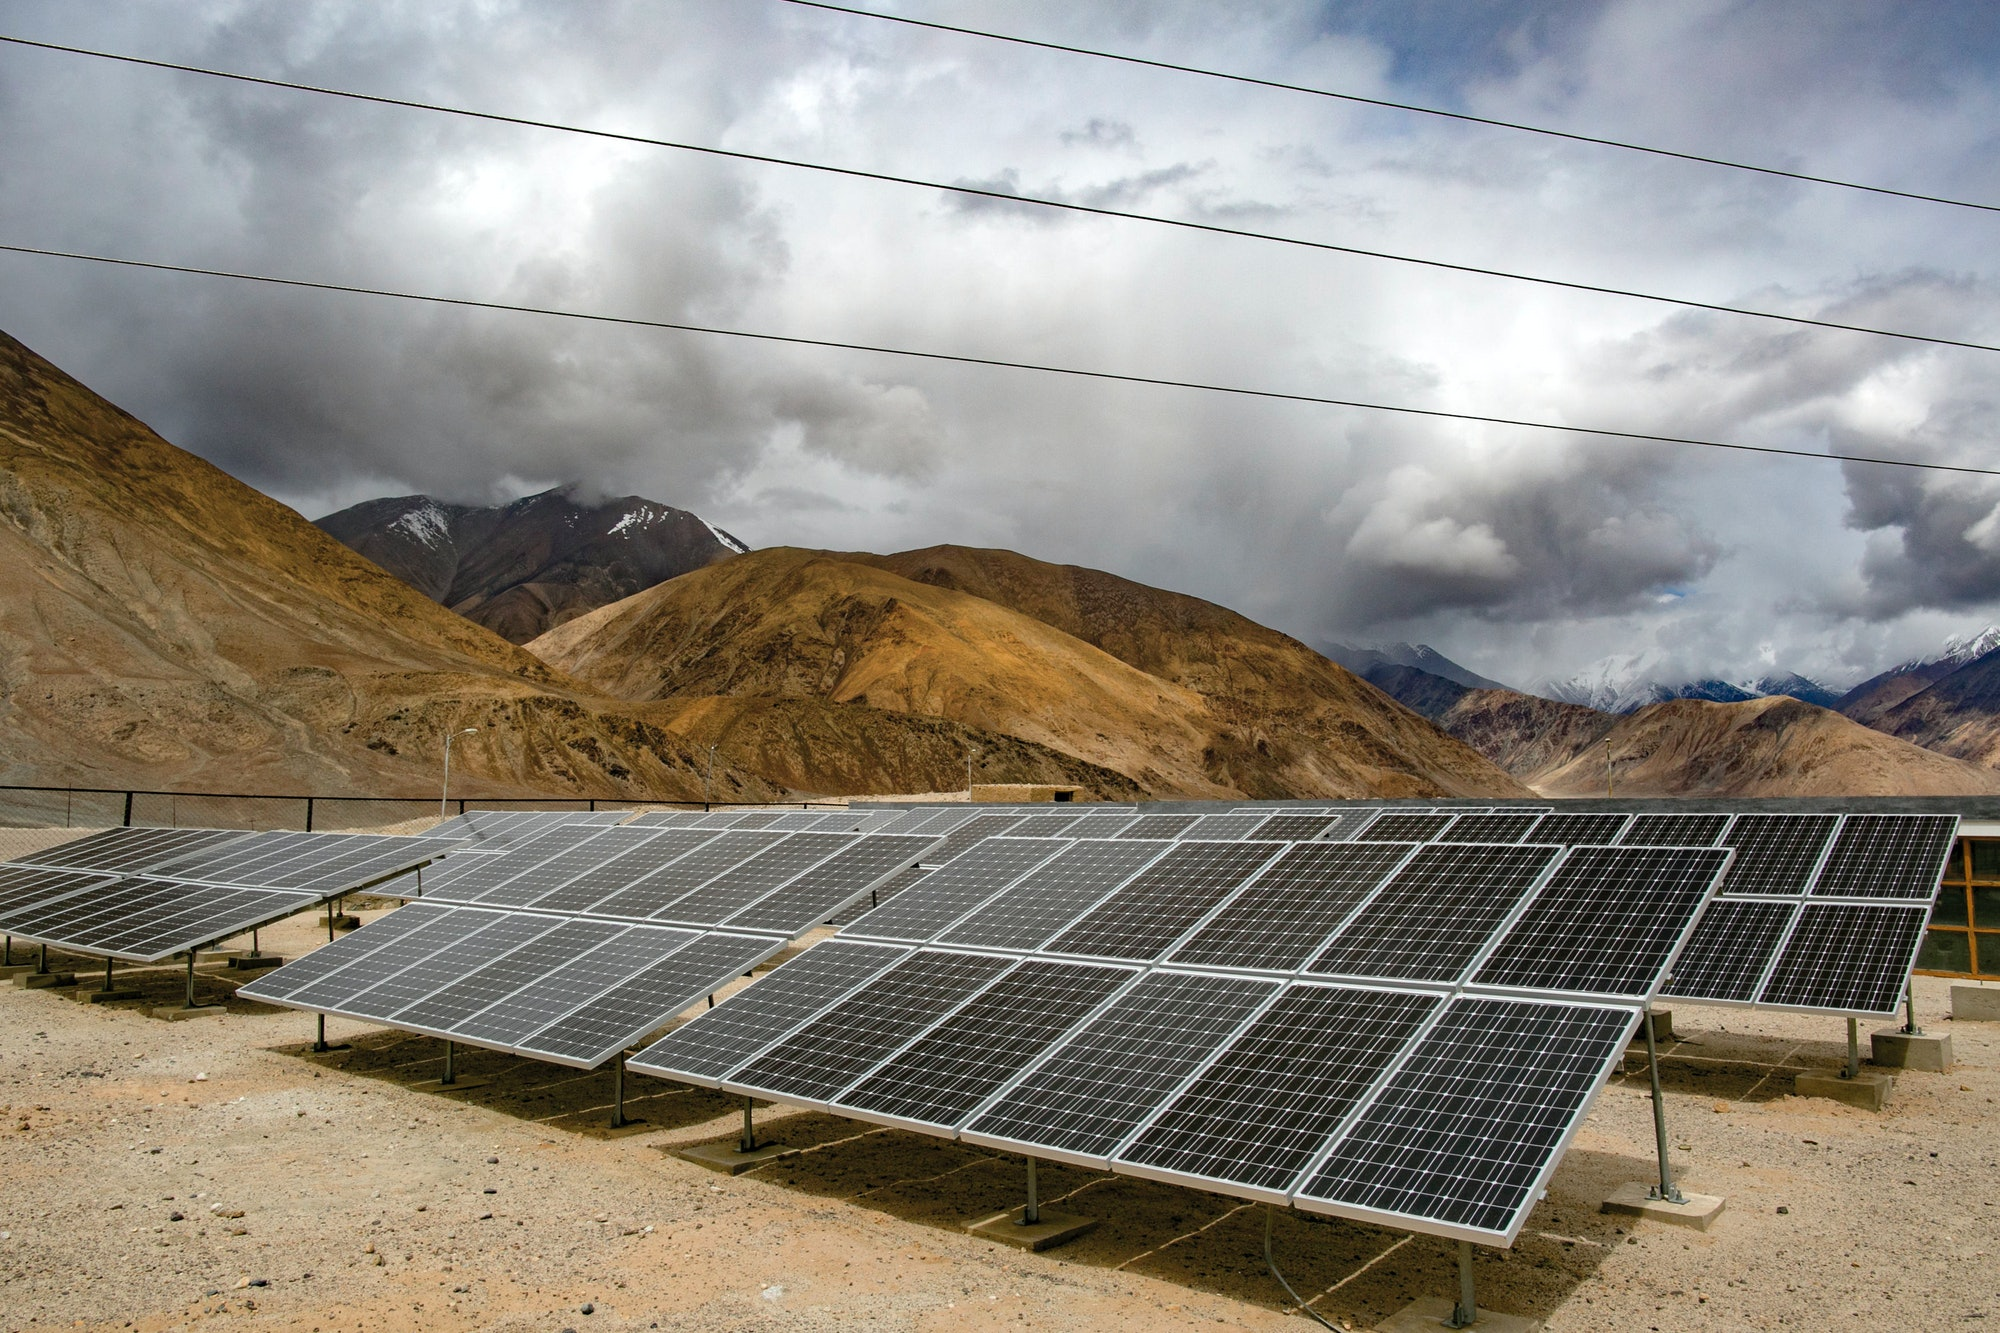 LADAKH, INDIA - JUNE 14: Solar panels are seen inYaratvillage on June 14,2017in Ladakh, India. The cold desert of Ladakh has been known as the roof of the world and reportedly a region with huge potential in tapping the solar energy with its vast patches of barren land surrounded by mountains. As U.S. President Donald Trump announced plans to withdraw from the Paris agreement on climate change, Indian Prime Minister Narendra Modi said two days later that India was 'part of the world's shared heritage' and that the country would 'continue working... above and beyond the Paris accord'. At the Leh district, located at the altitude of 11,562 feet, the Ladakh Renewable Energy Development Agency is currently working on renewable energy, including solar, projects throughout Ladakh despite challenges at the mountainous terrain and sees the opportunity to earn revenue by exporting electricity to demand centers in North India while its residence simply hope to attain energy independence. Based on reports, China and India will be the biggest recipients for renewables energy with the highest power-generating capacity by 2040. India had planned to build the world's largest solar power project in Ladakh back in 2014 but the project was later announced this year to be placed it on hold due to the huge costsonthe transmission system while the country continues by focusing on smaller projects instead. (Photo by Allison Joyce/Getty Images)